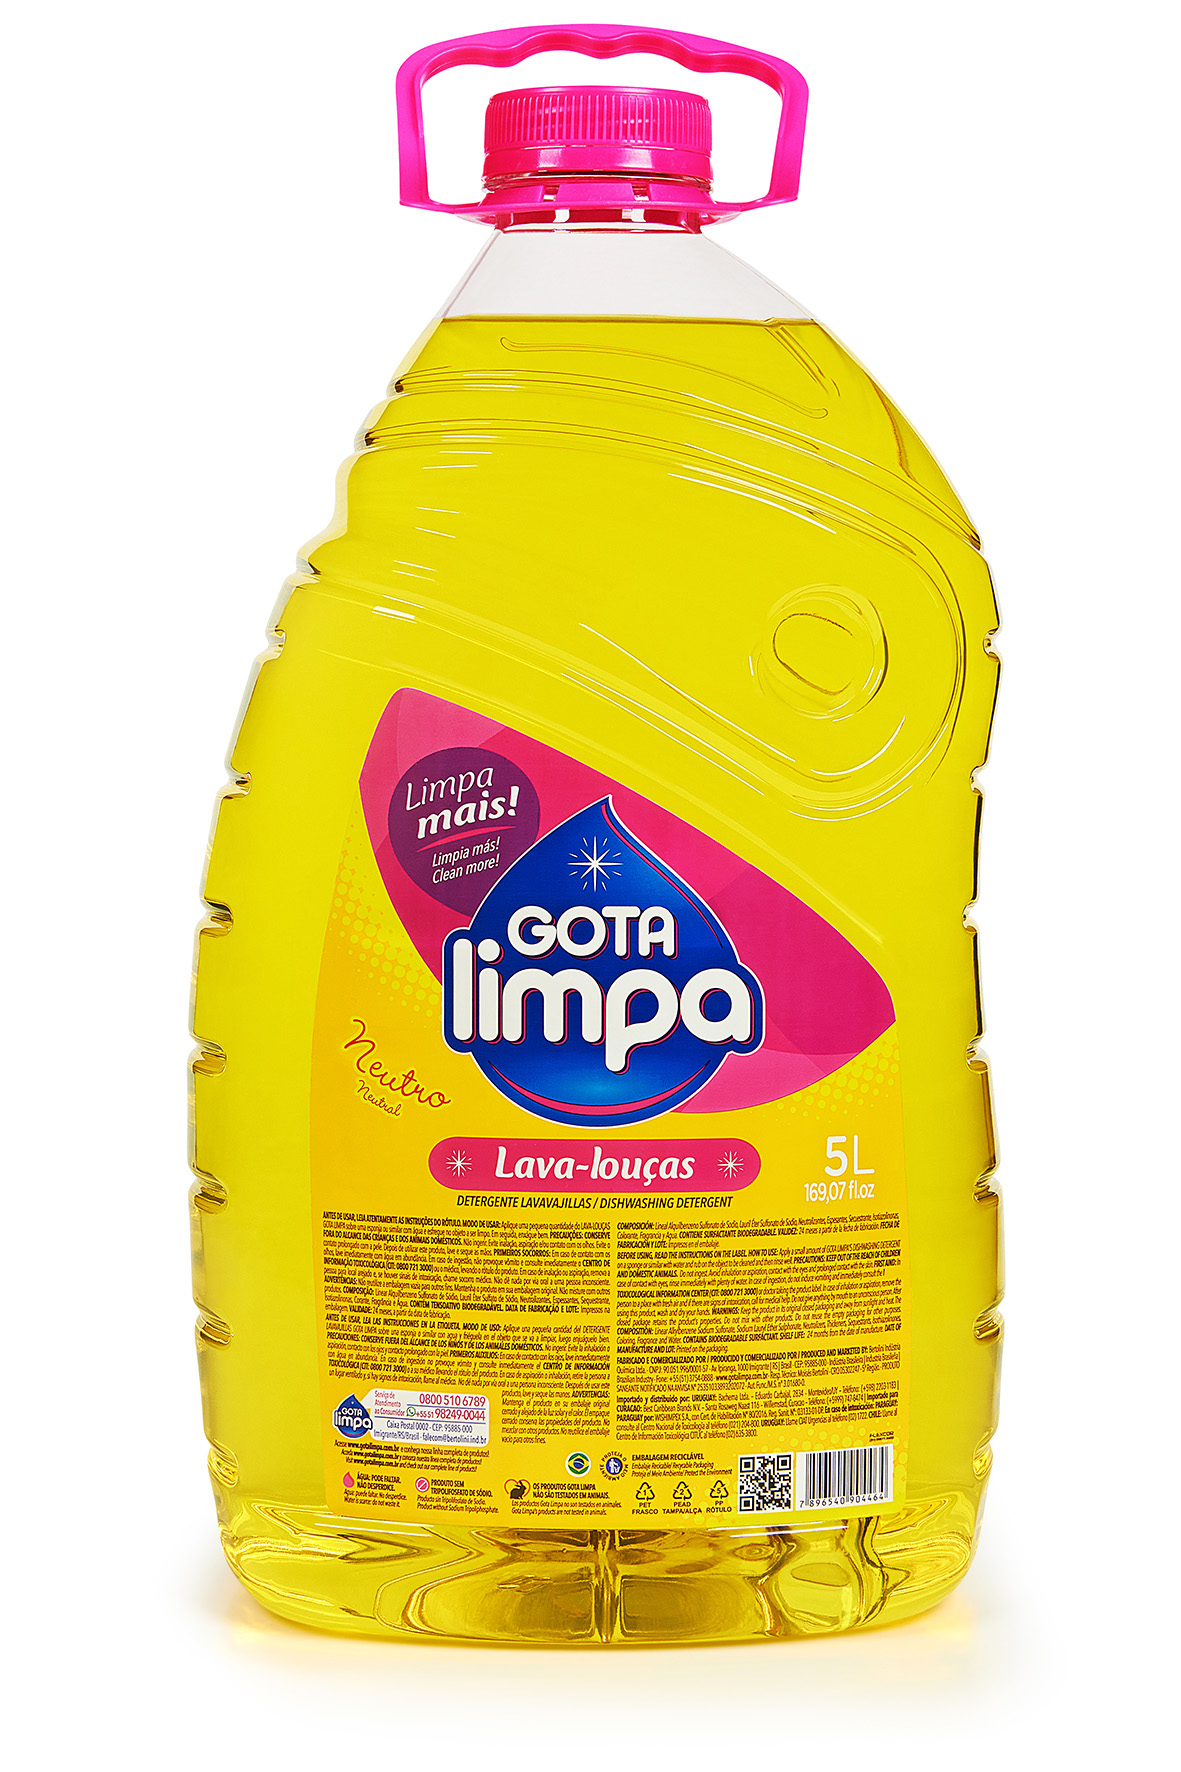 Gota Limpa Liquid Dishwashing Detergent Crystal Neutral 5L